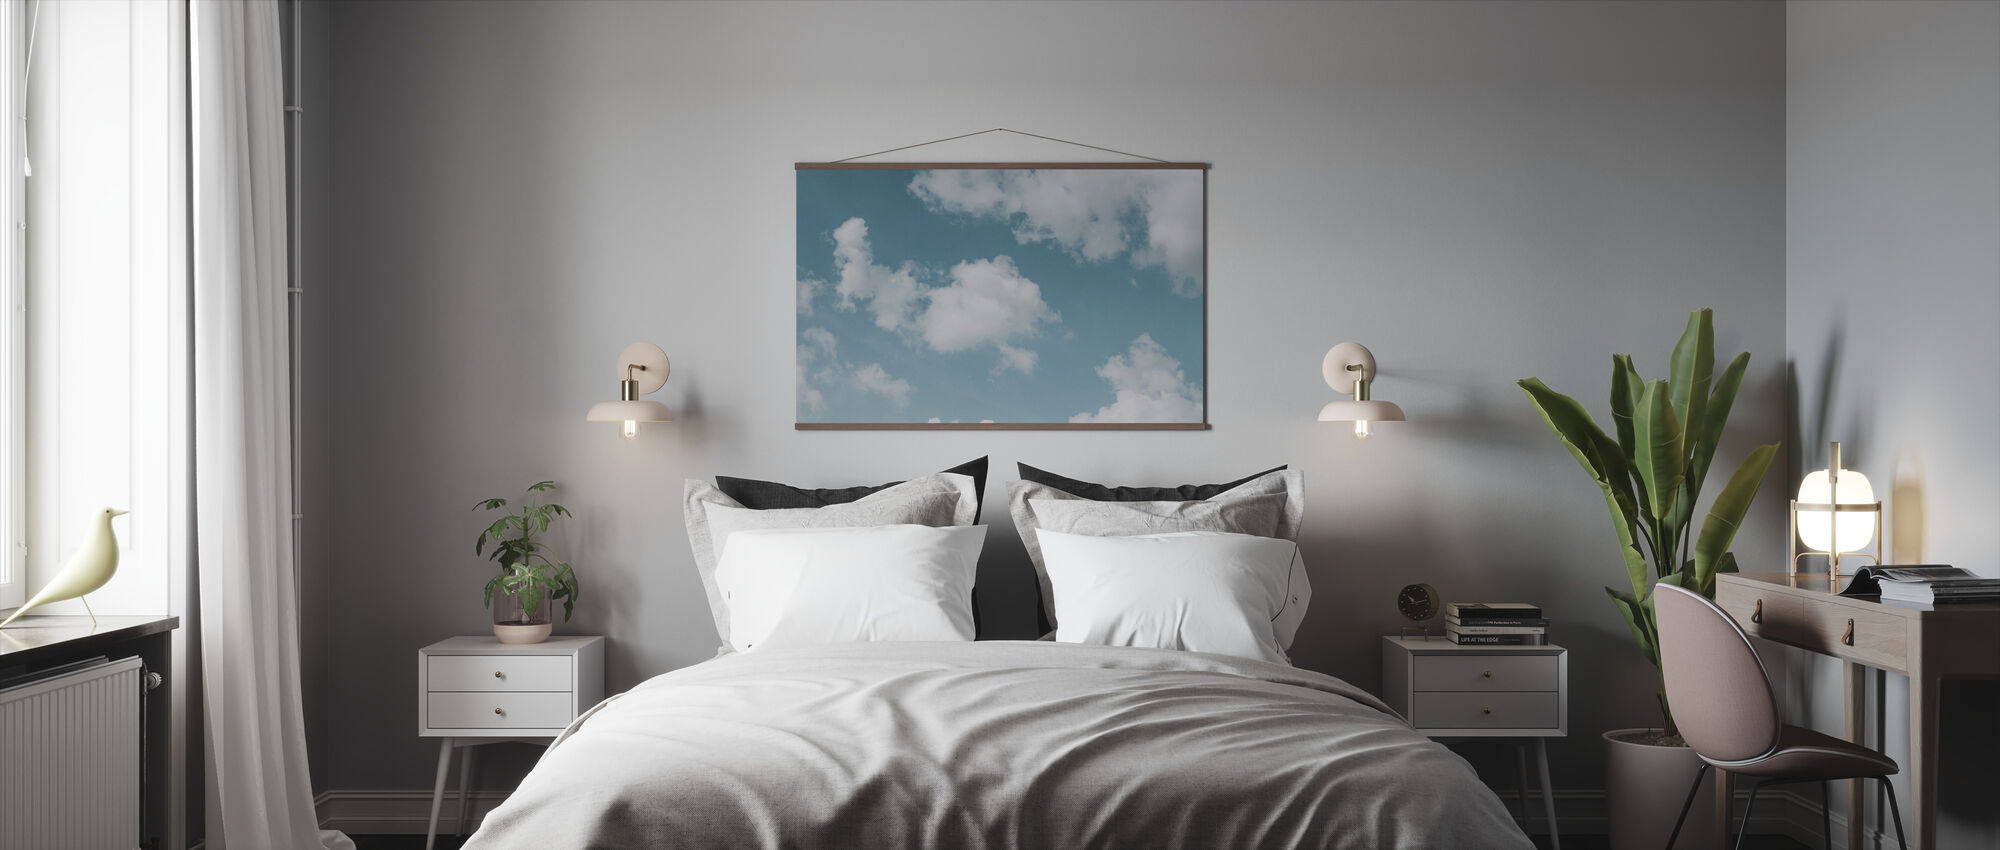 Sea of Clouds - Poster - Bedroom